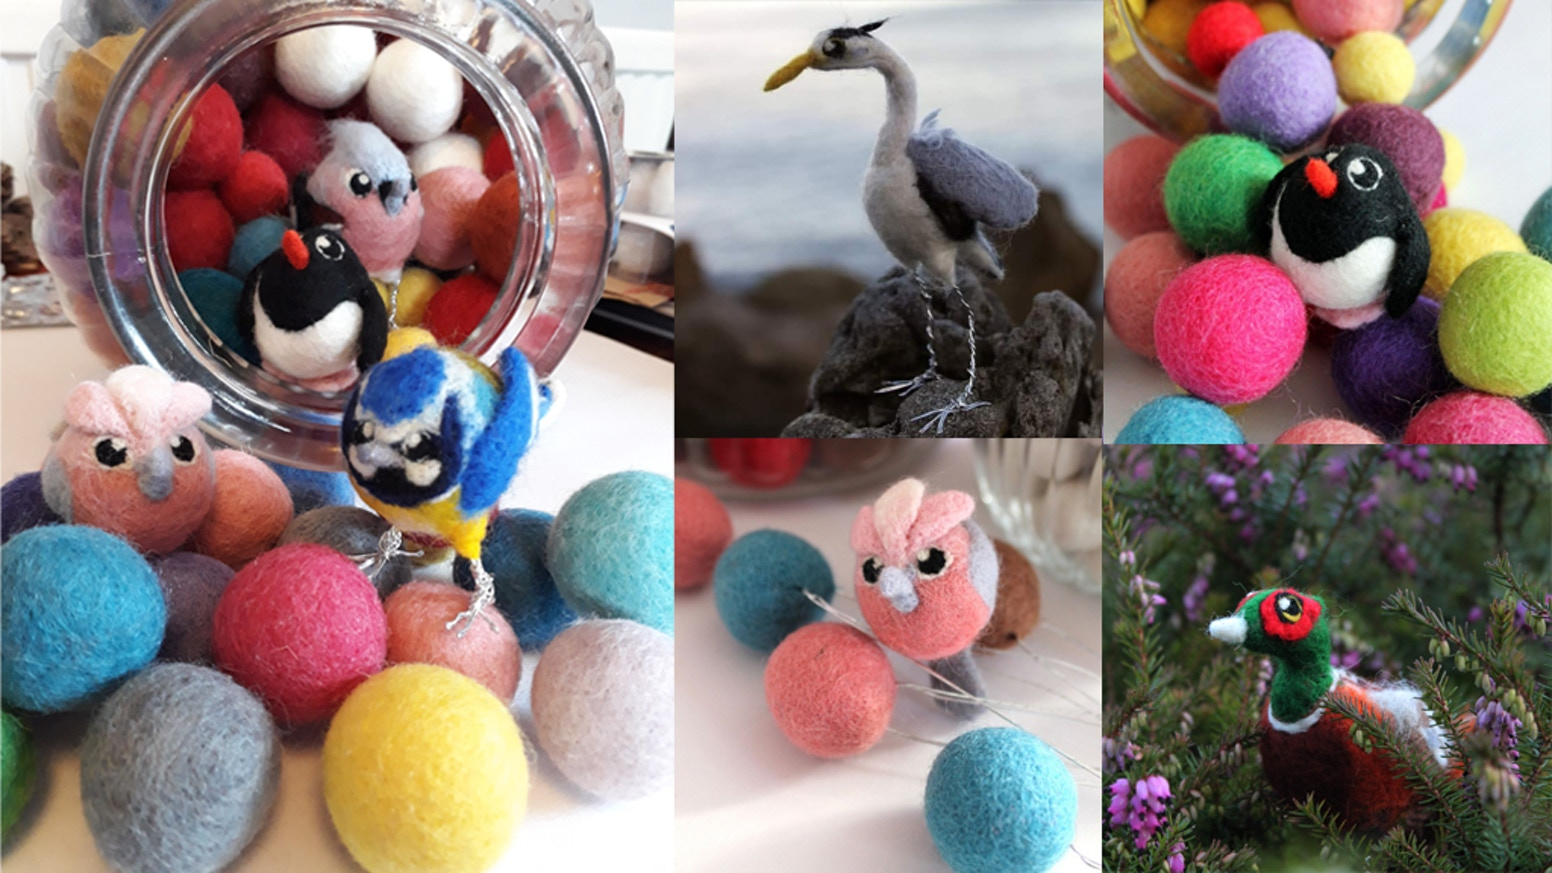 100 needle felted birds, each one crafted around a felt bead, each one unique.